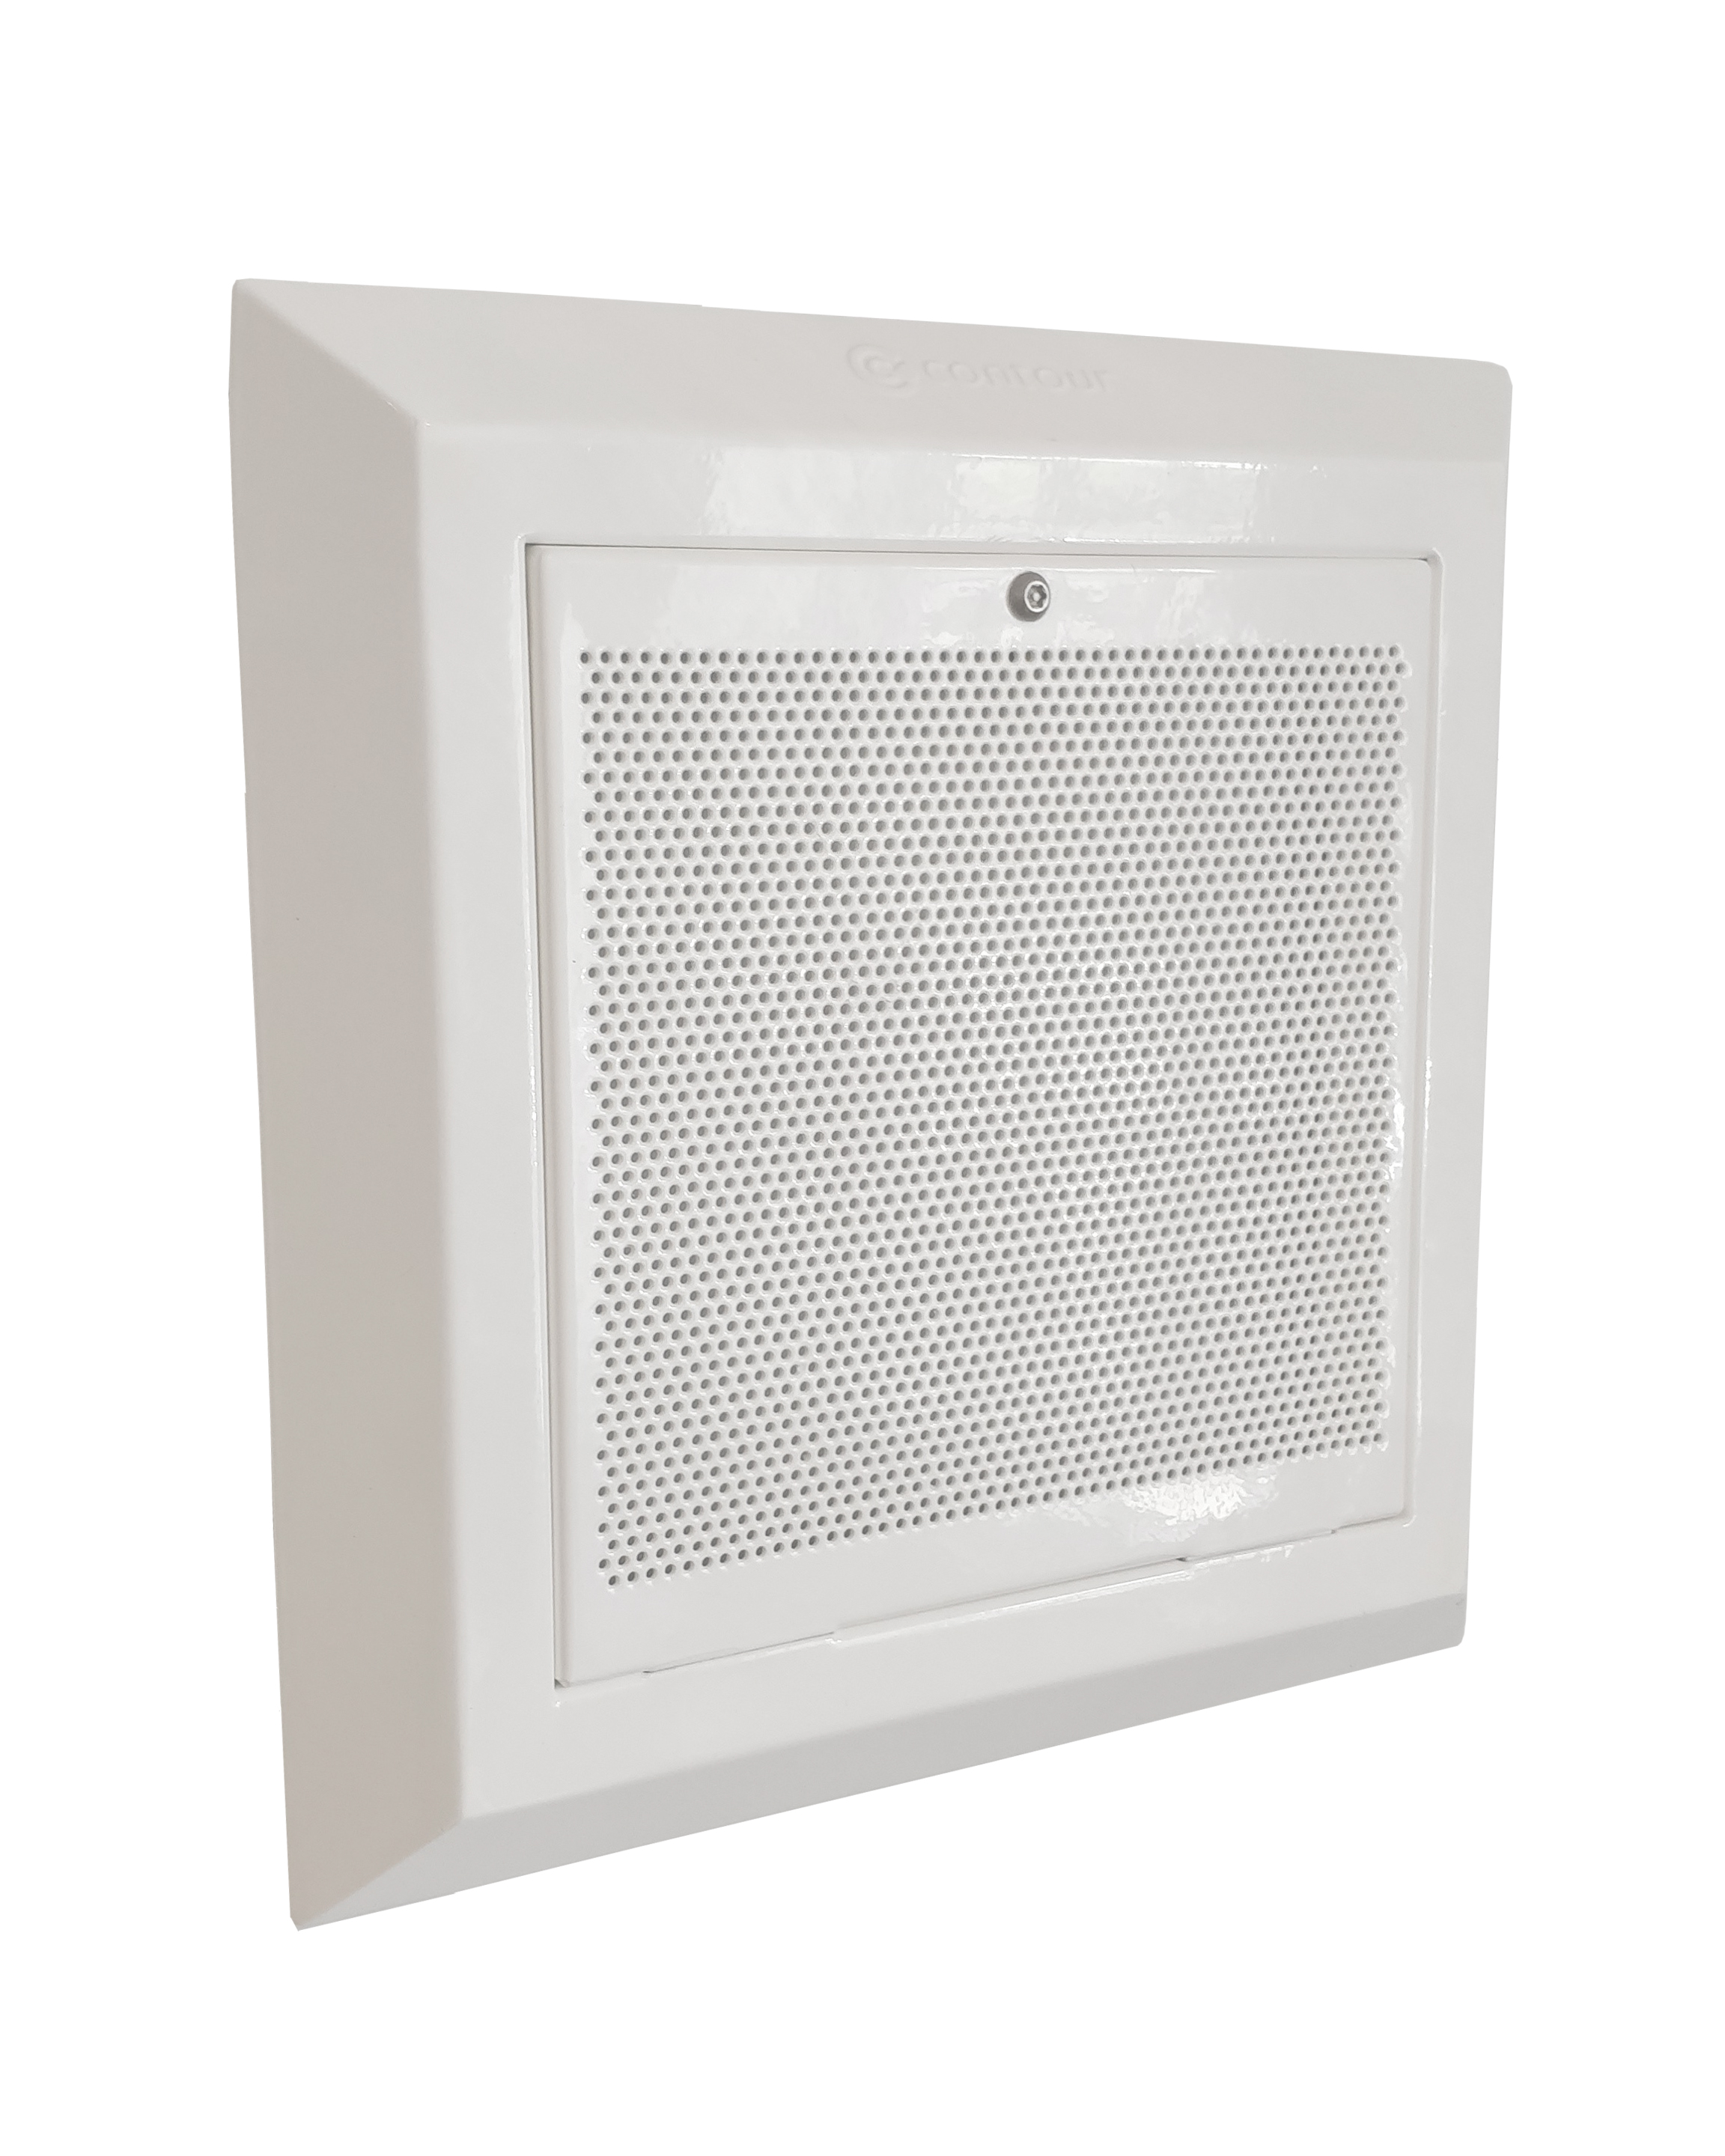 Anti-Ligature Grille Closed - Ideal For Mental Health Environments - Contour Heating Experts LST Radiators